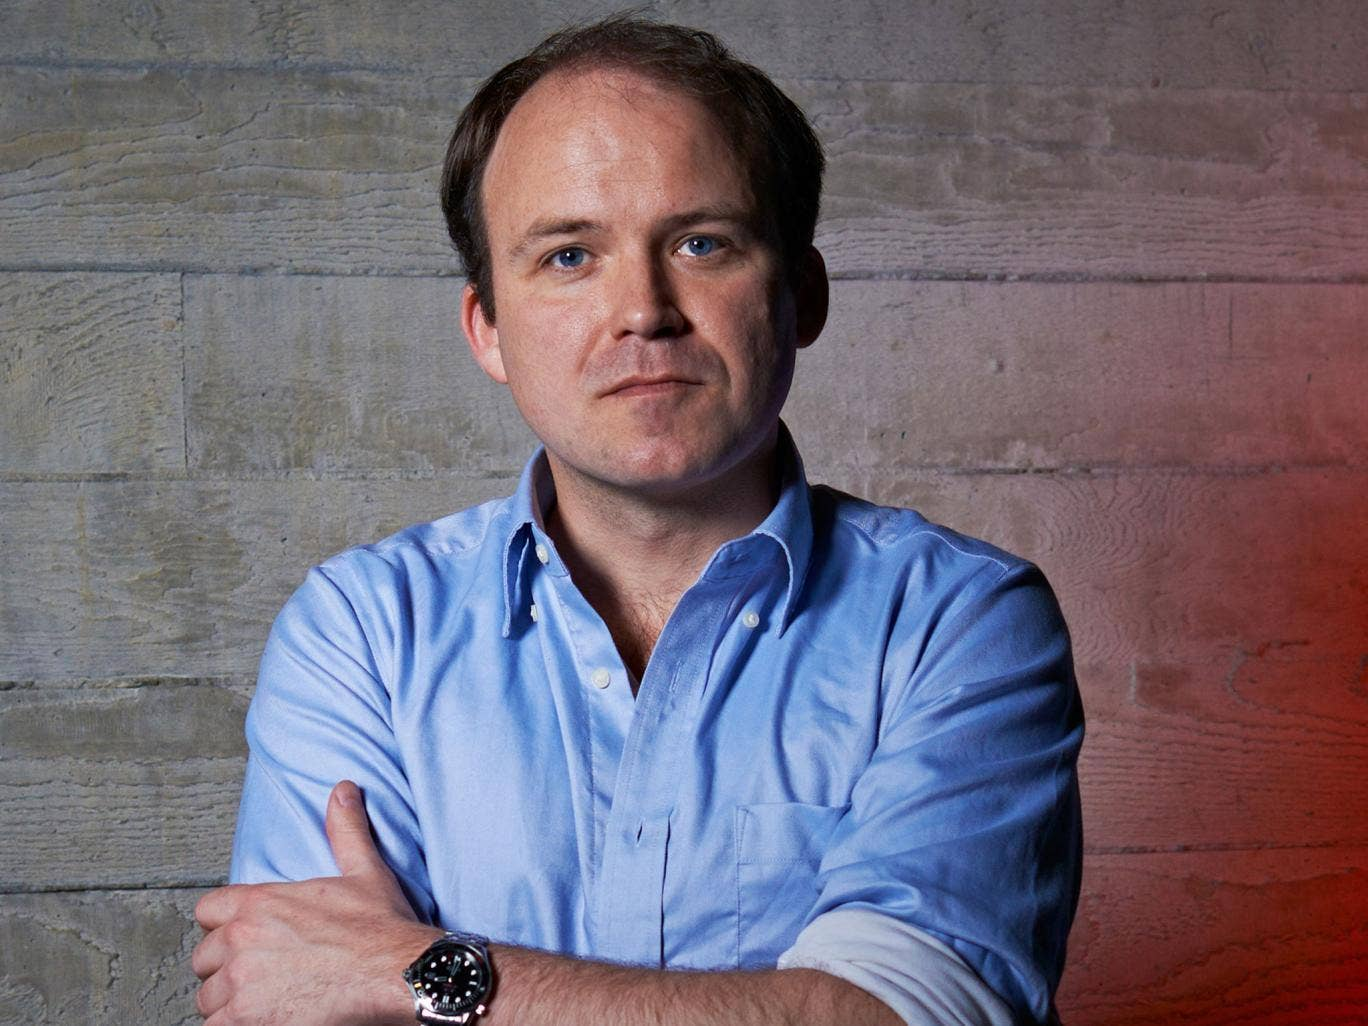 Star turn: Rory Kinnear has been praised for a string of roles, from Hamlet to a blackmailed PM